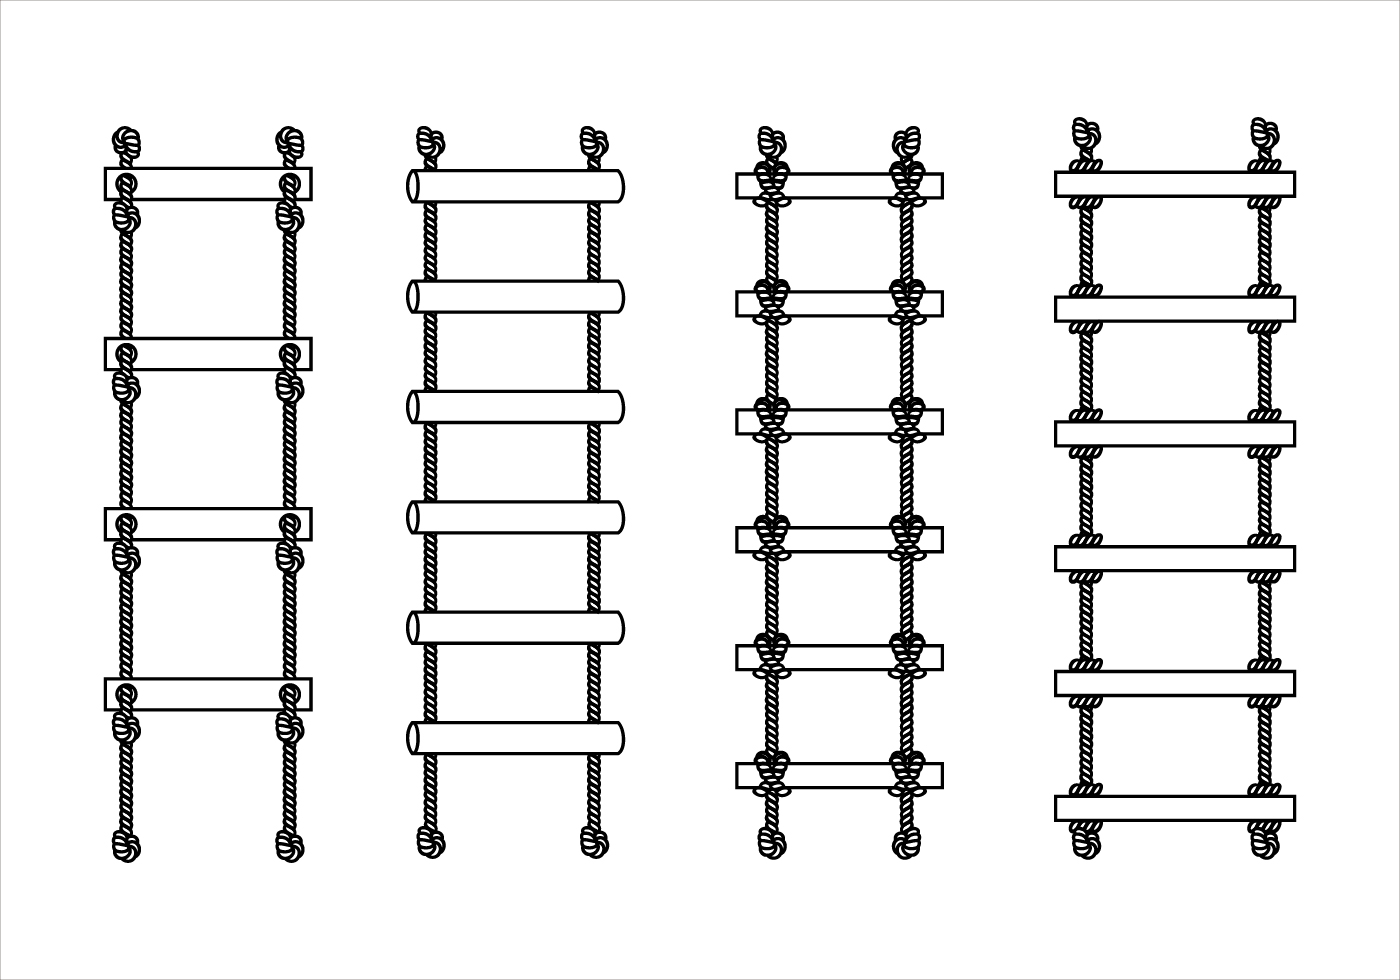 Brown Rope Ladder Vectors - Download Free Vector Art, Stock ... for Rope Ladder Knot  28cpg